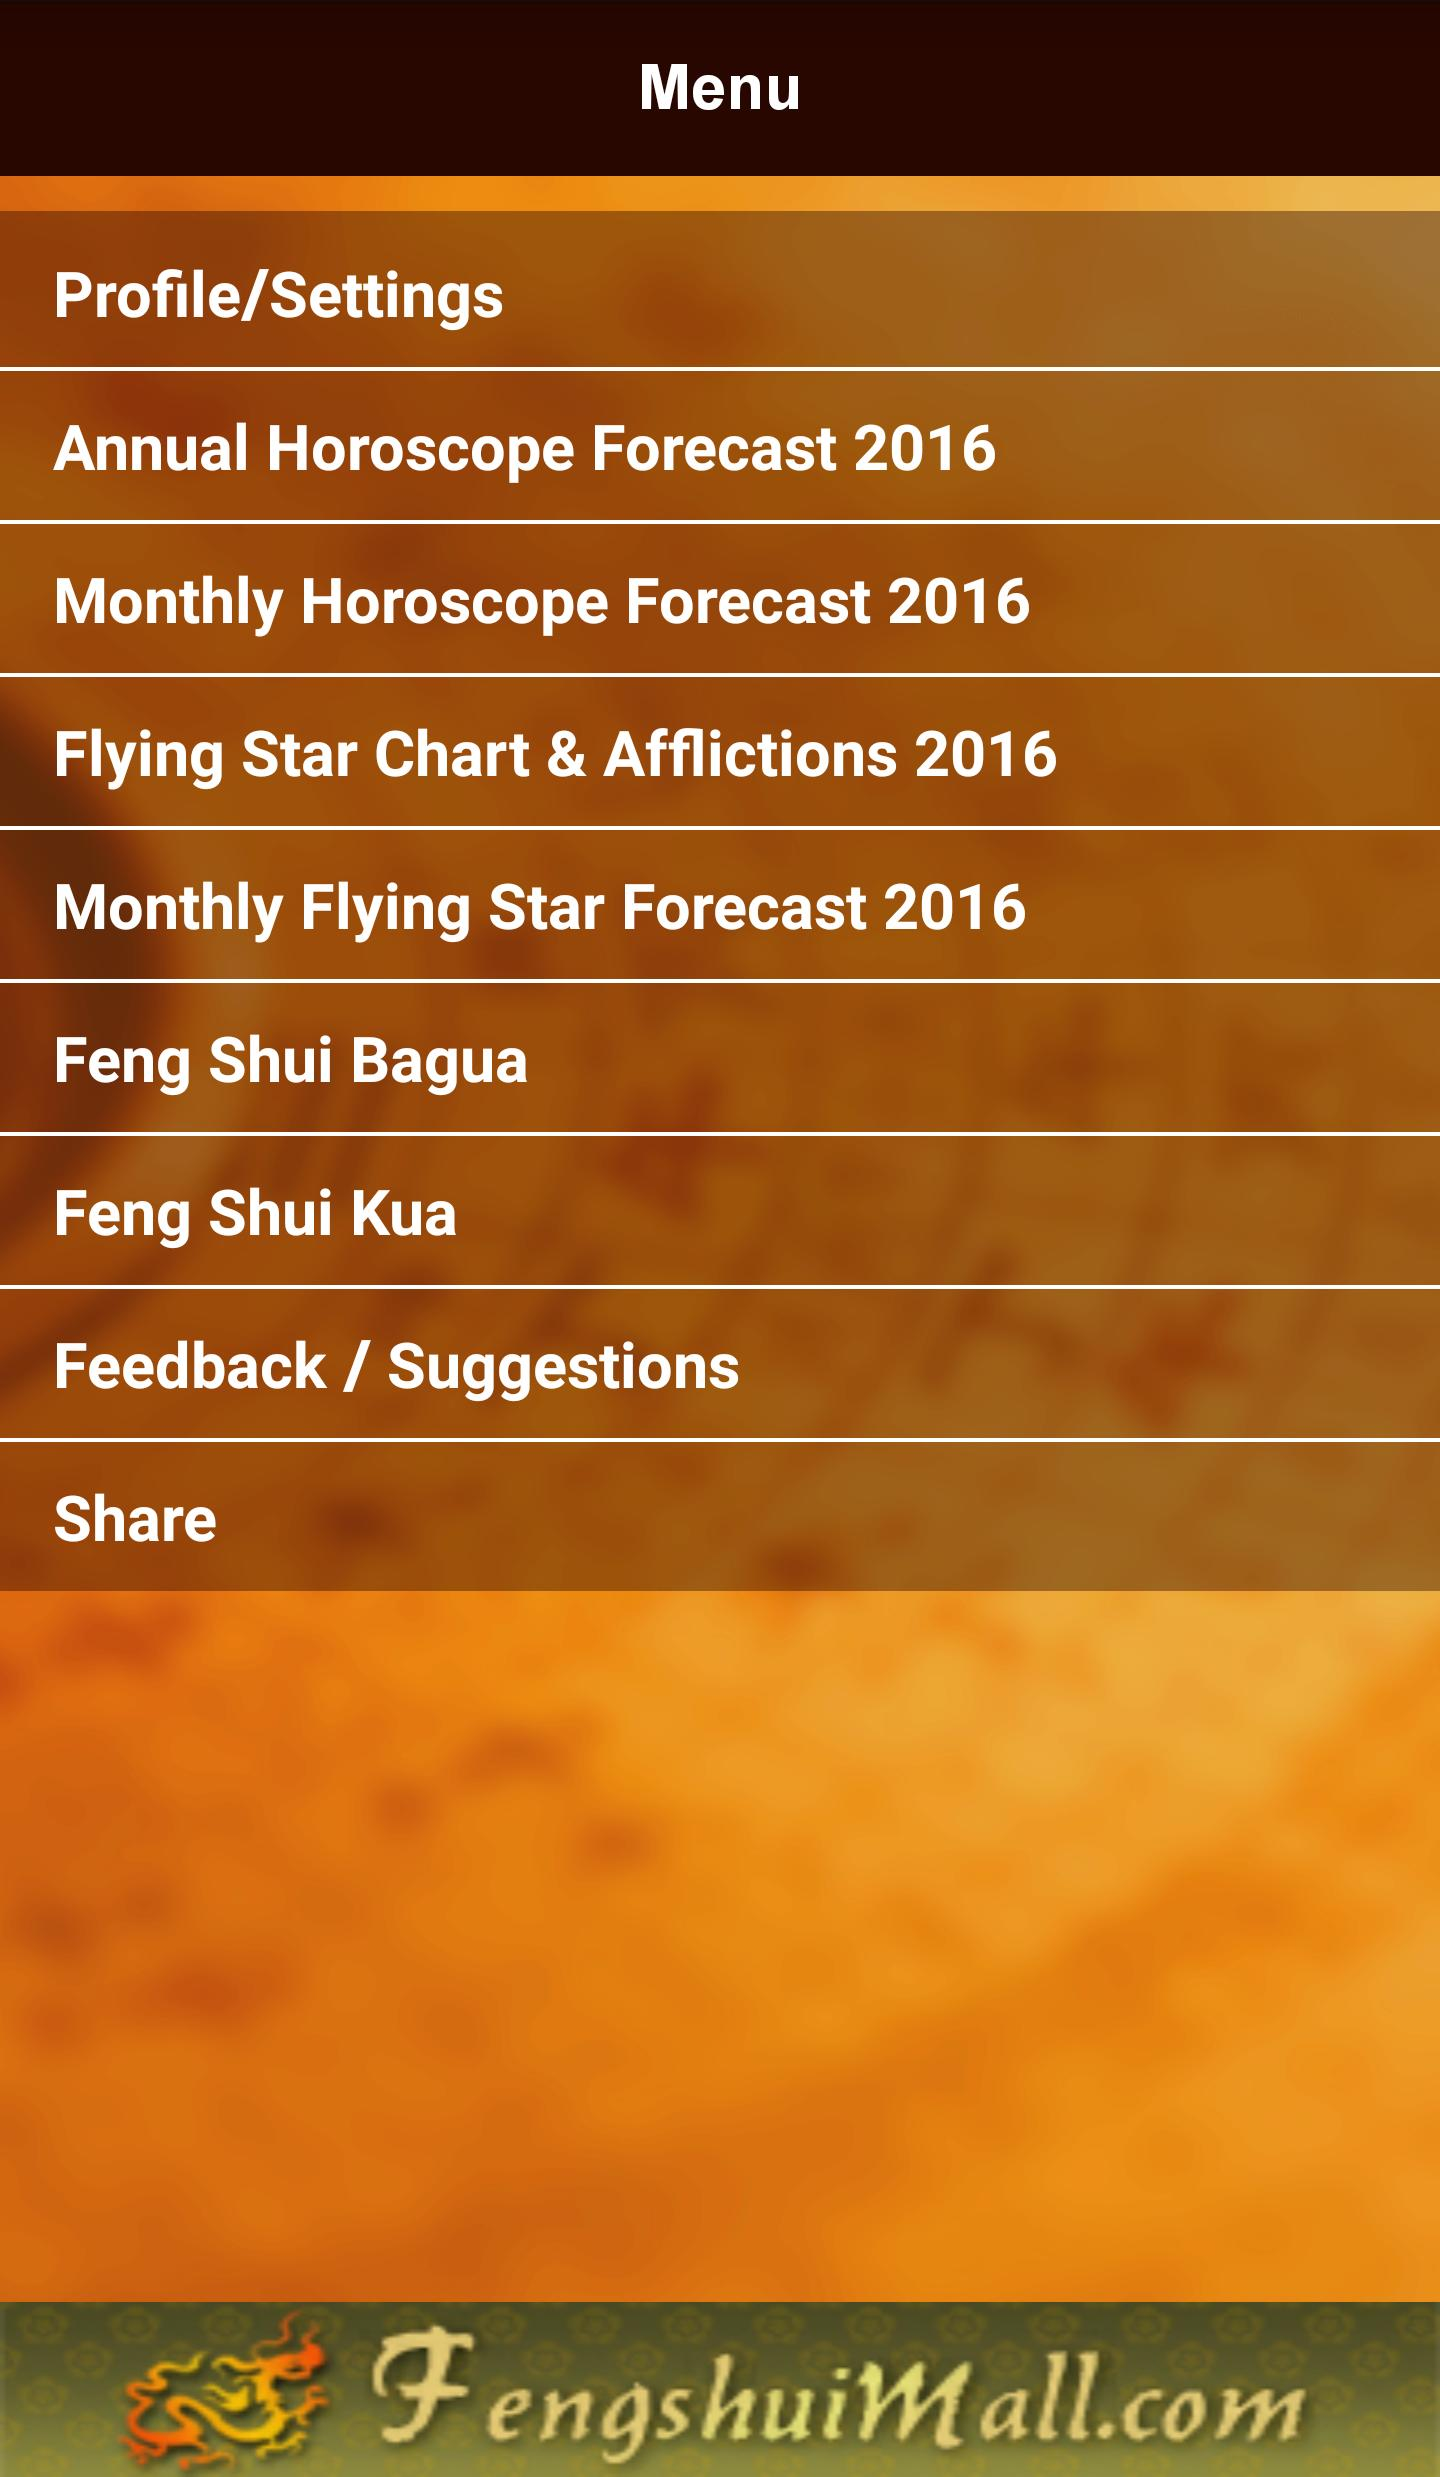 Feng Shui & Horoscope 2019 for Android - APK Download